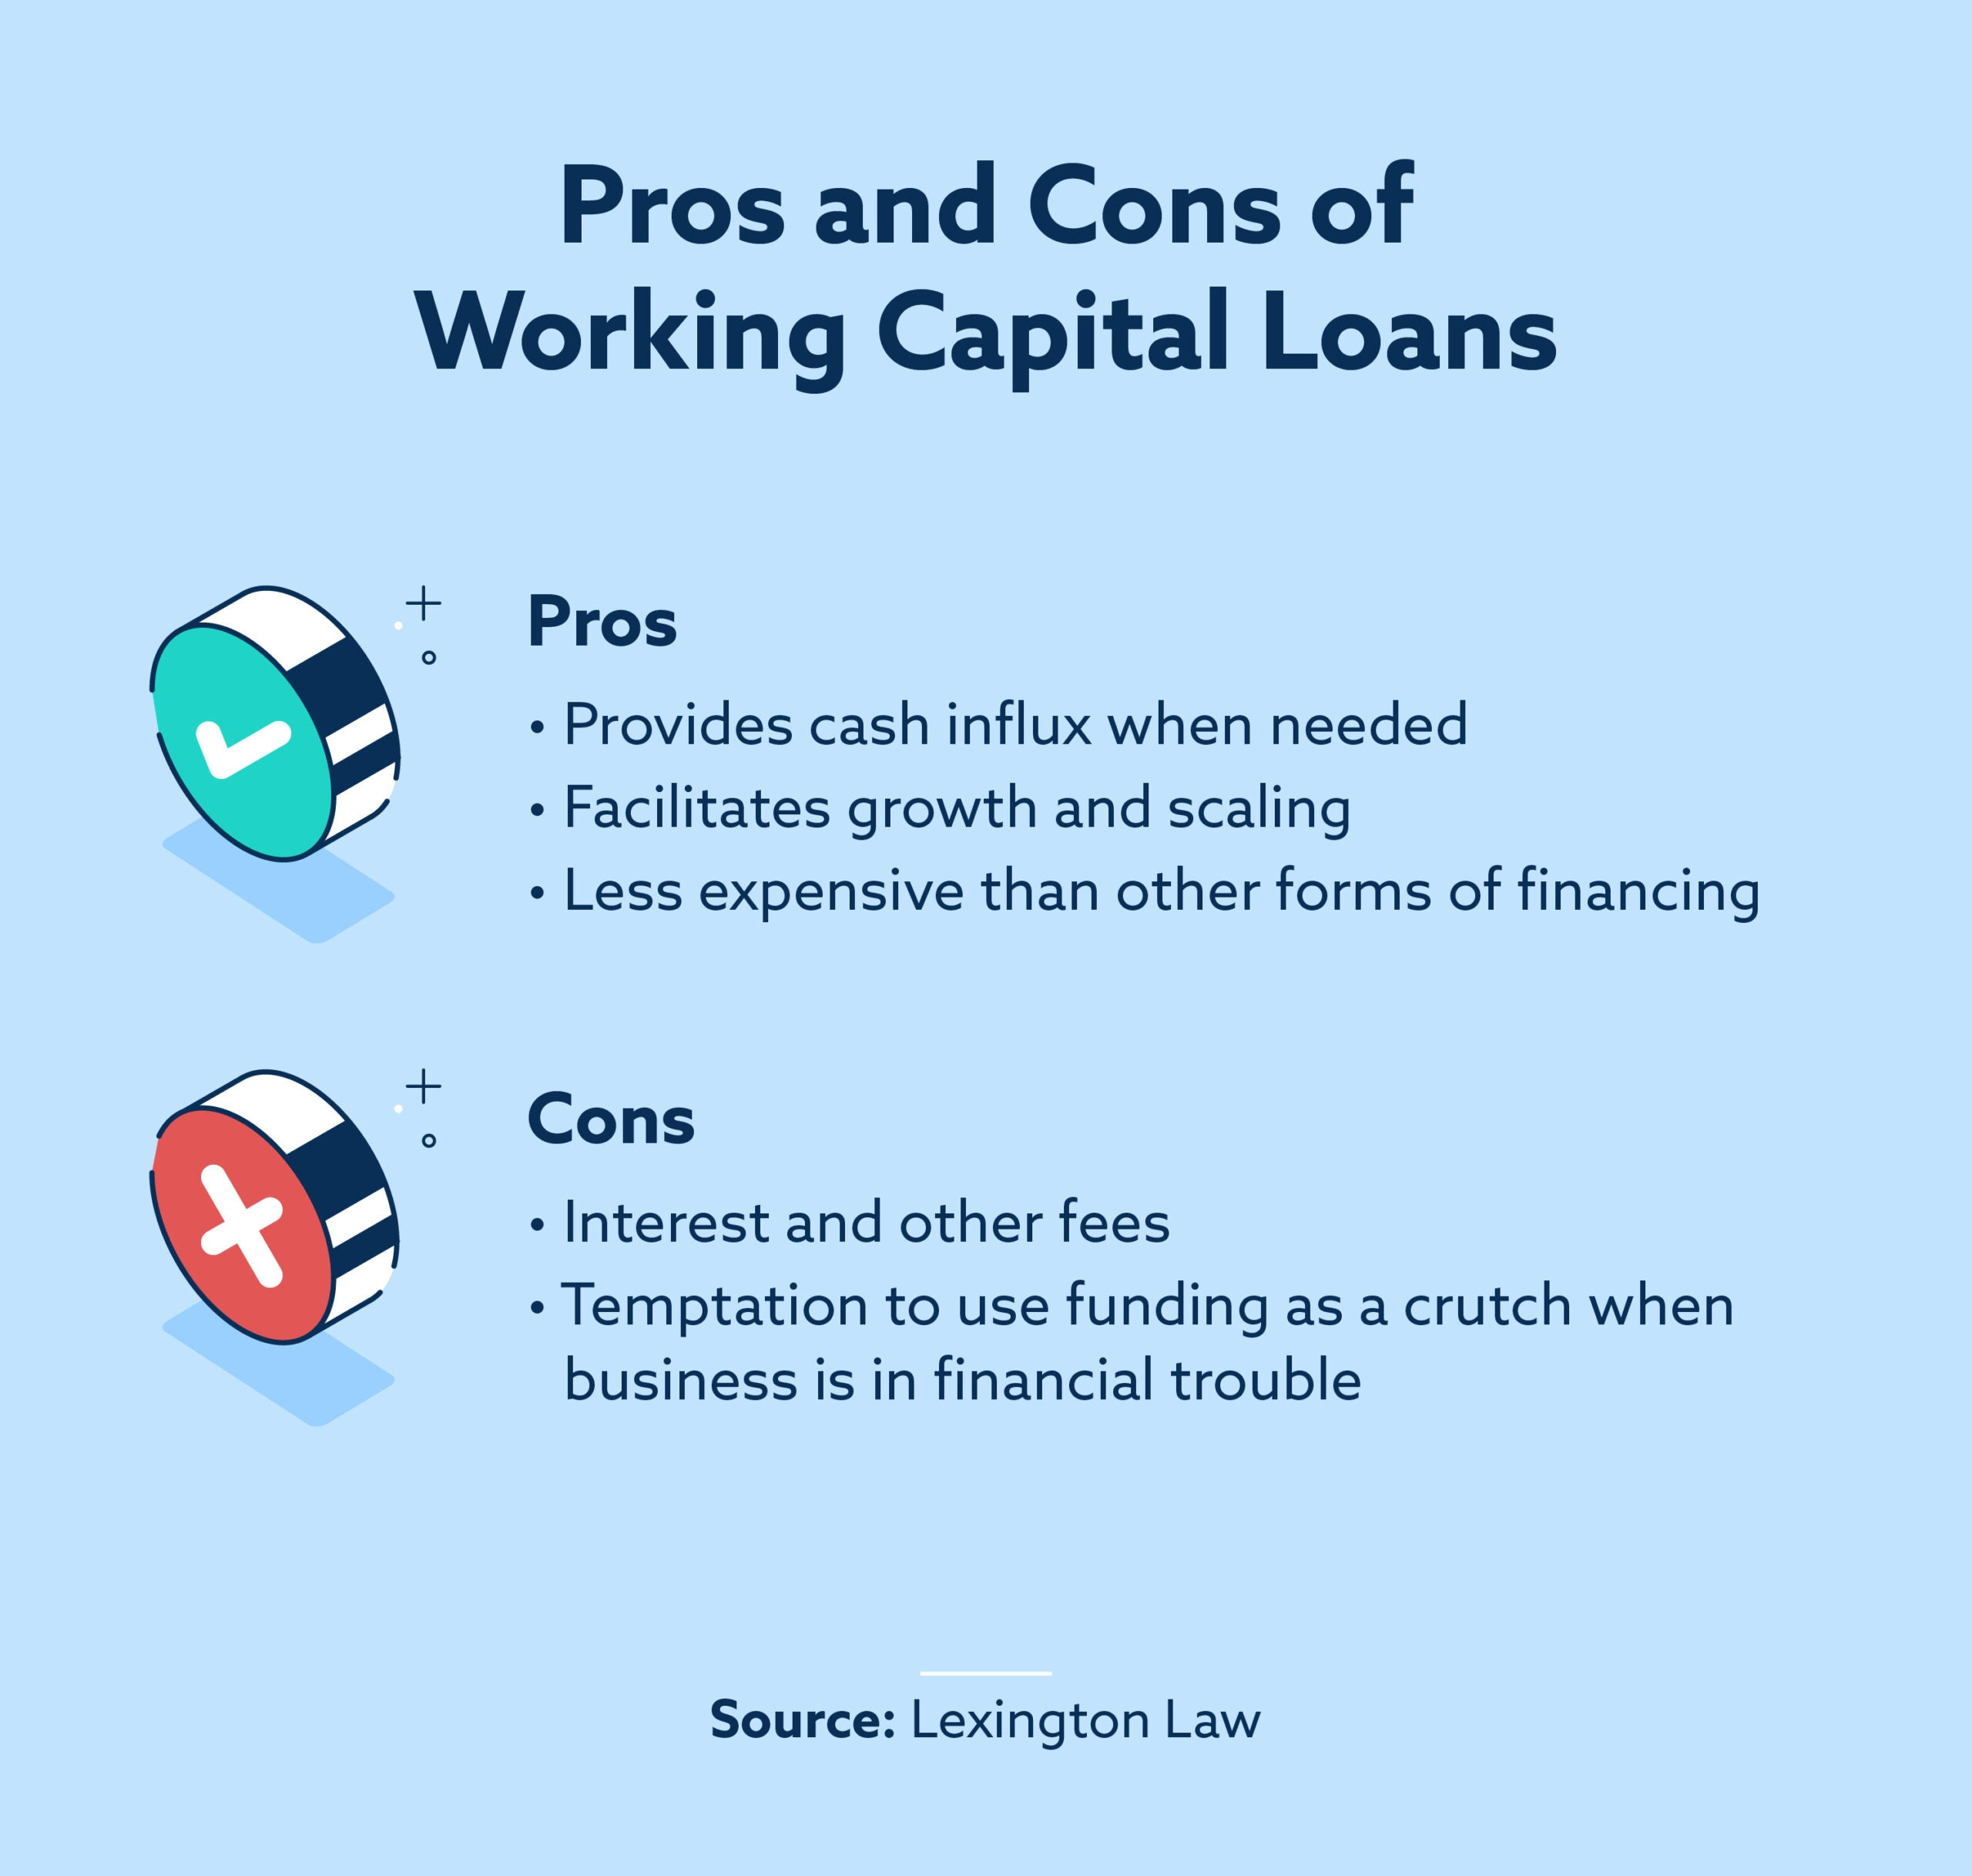 Pros and cons of working capital loans